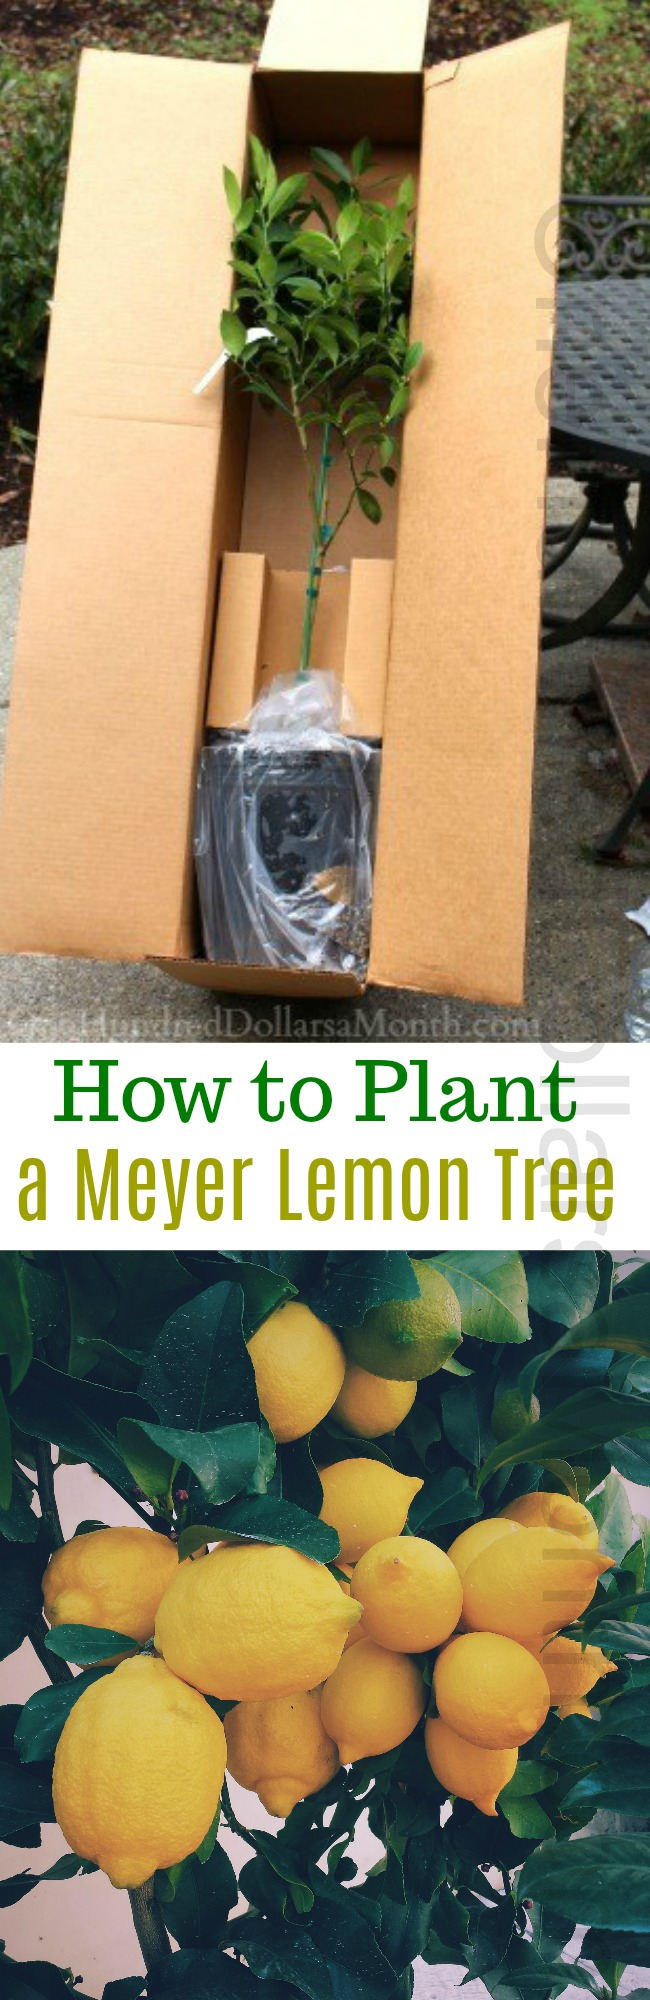 Container Gardening – How to Plant a Meyer Lemon Tree